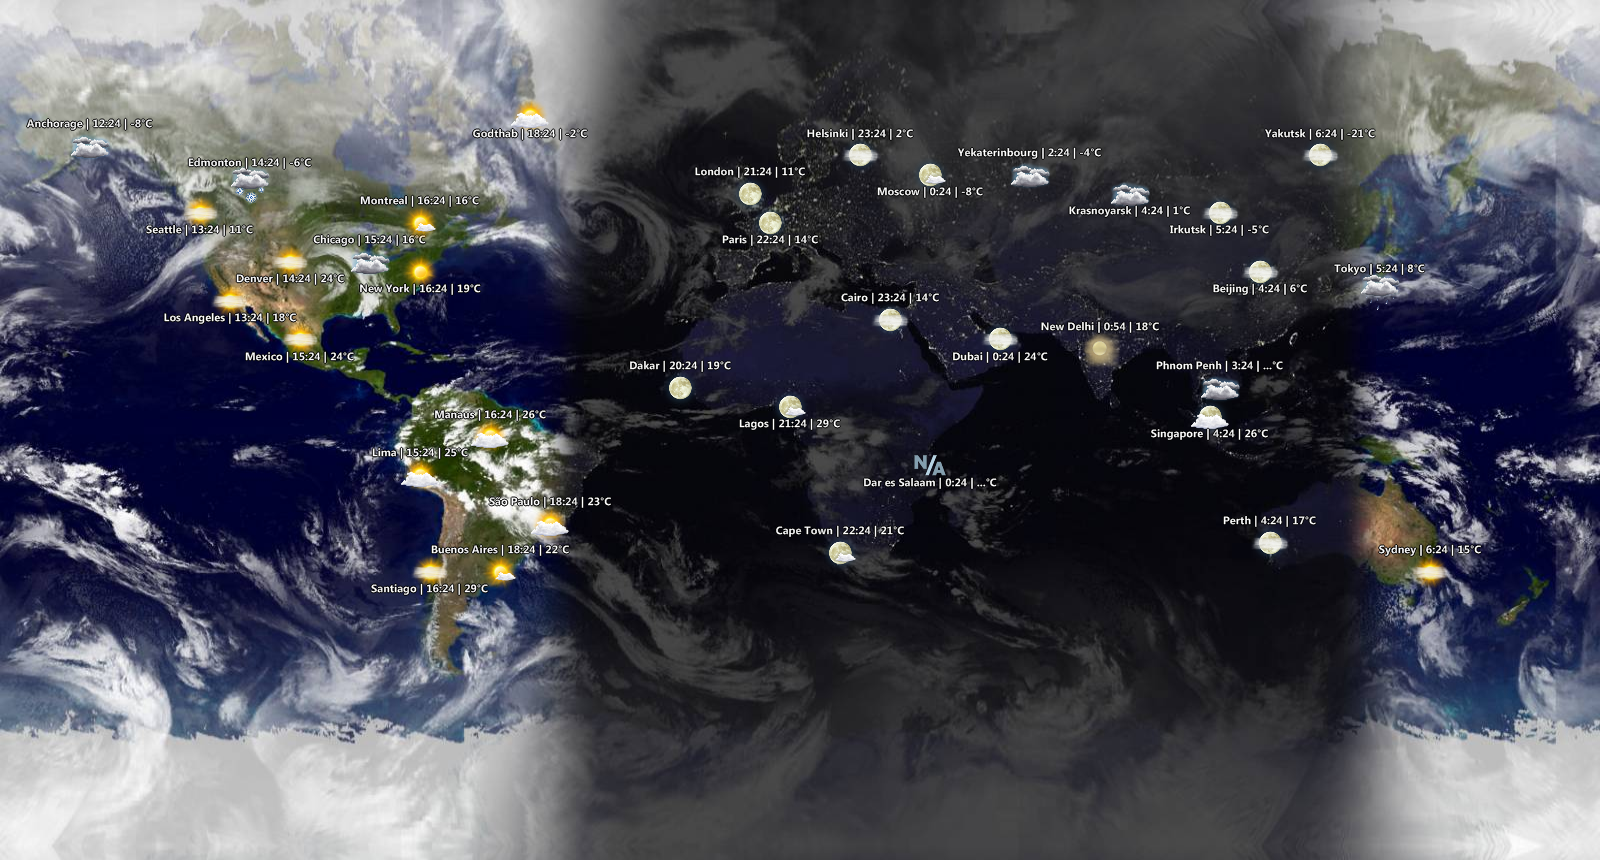 World sunlight map by yahibazou on deviantart world sunlight map by yahibazou world sunlight map by yahibazou gumiabroncs Image collections